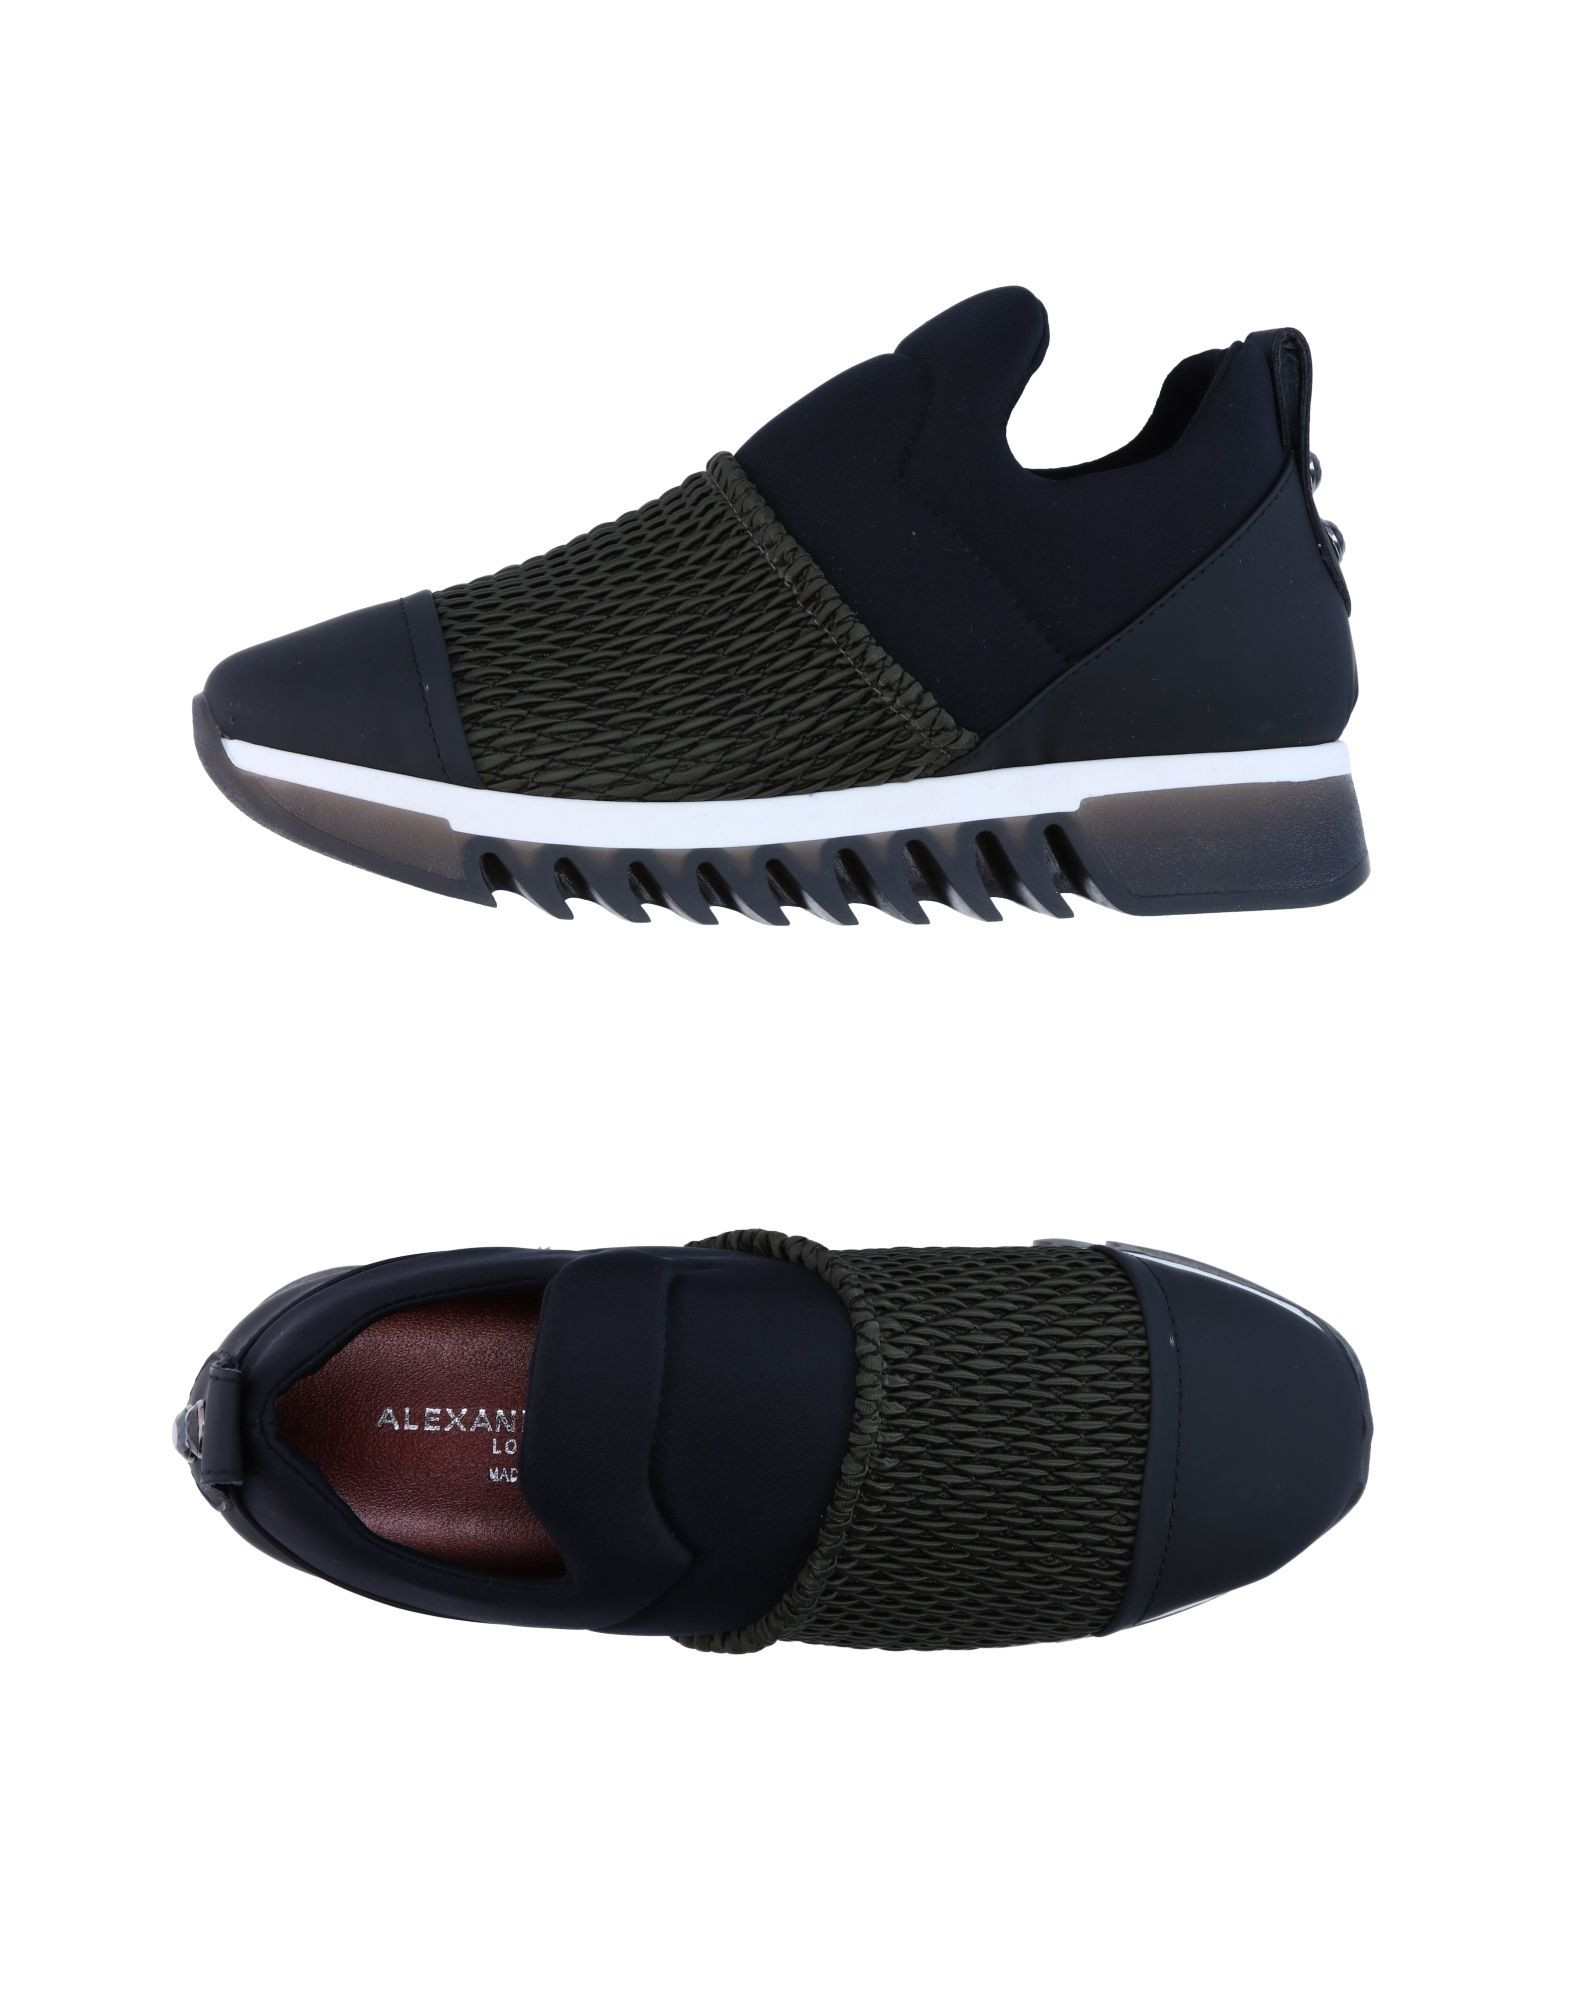 Sneakers Alexander Smith Donna - 11277157WT